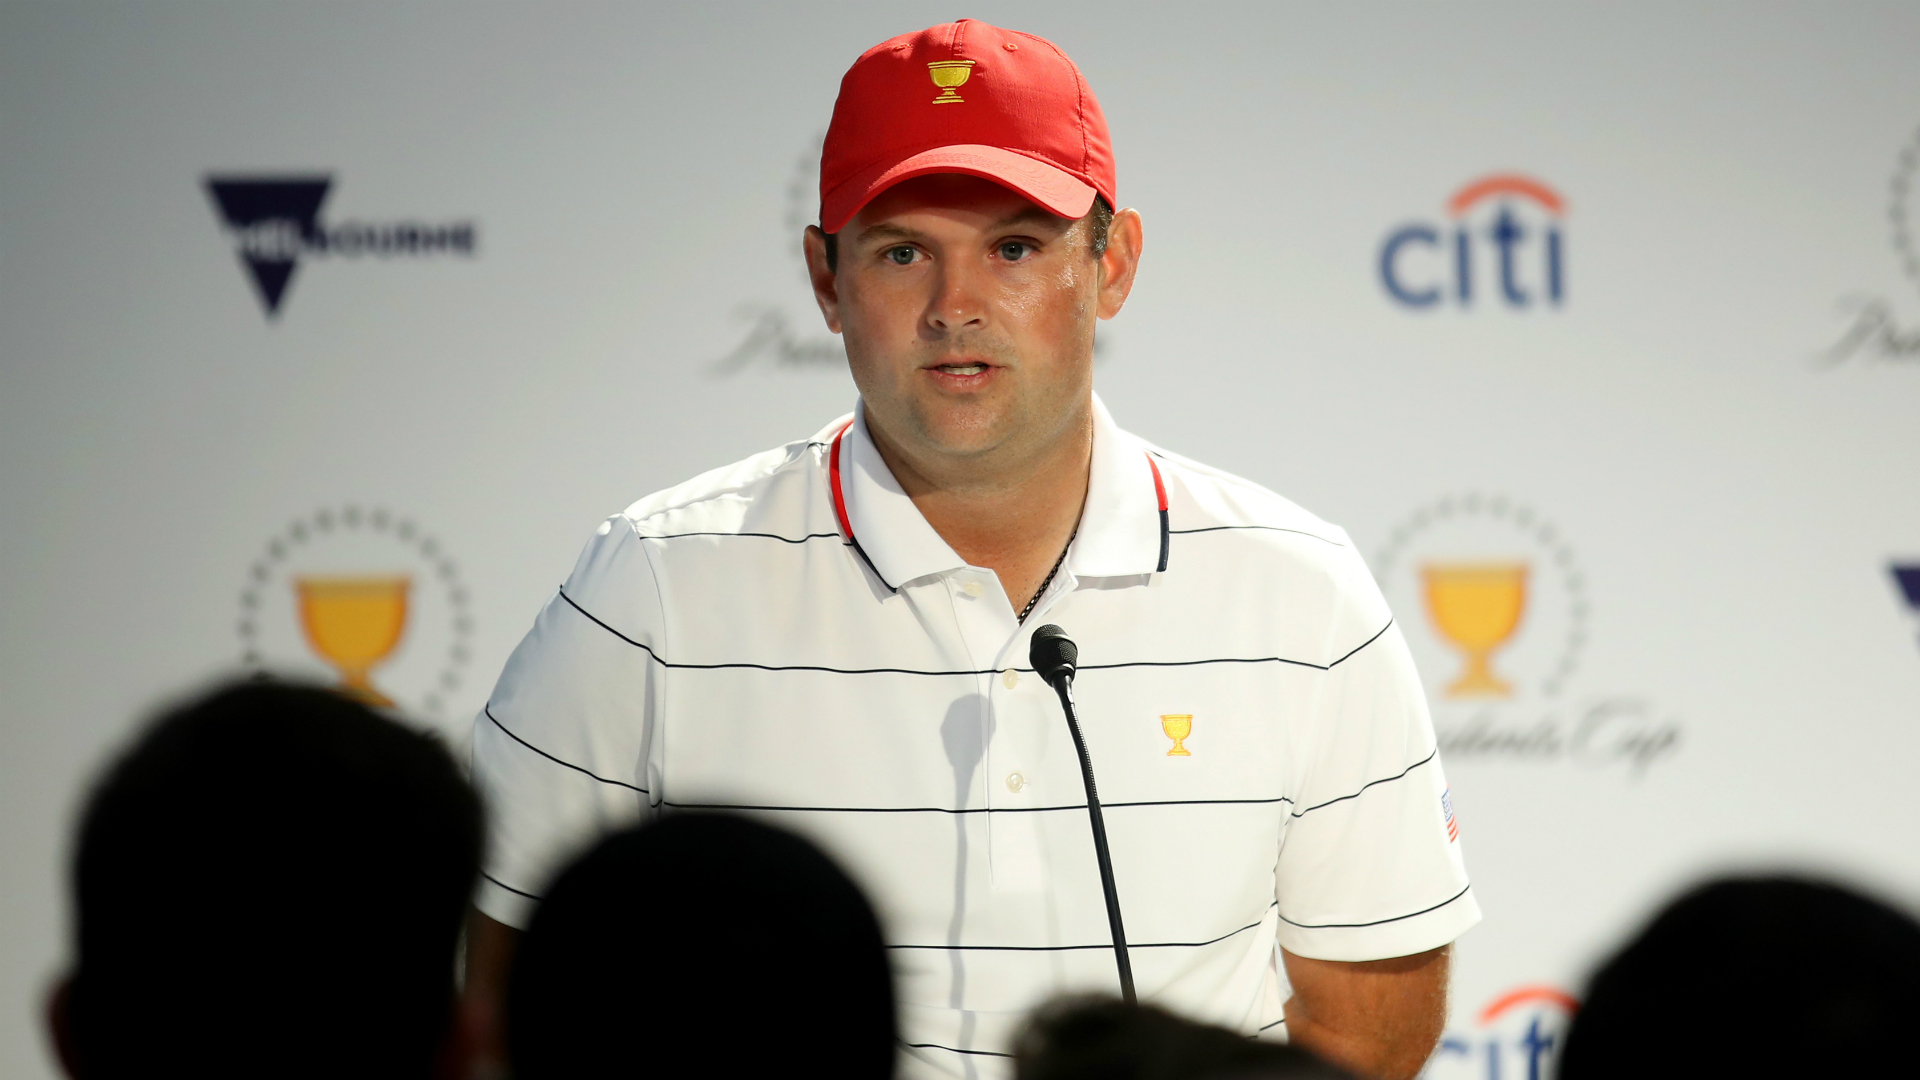 Patrick Reed says it's personal amid backlash ahead of Presidents Cup